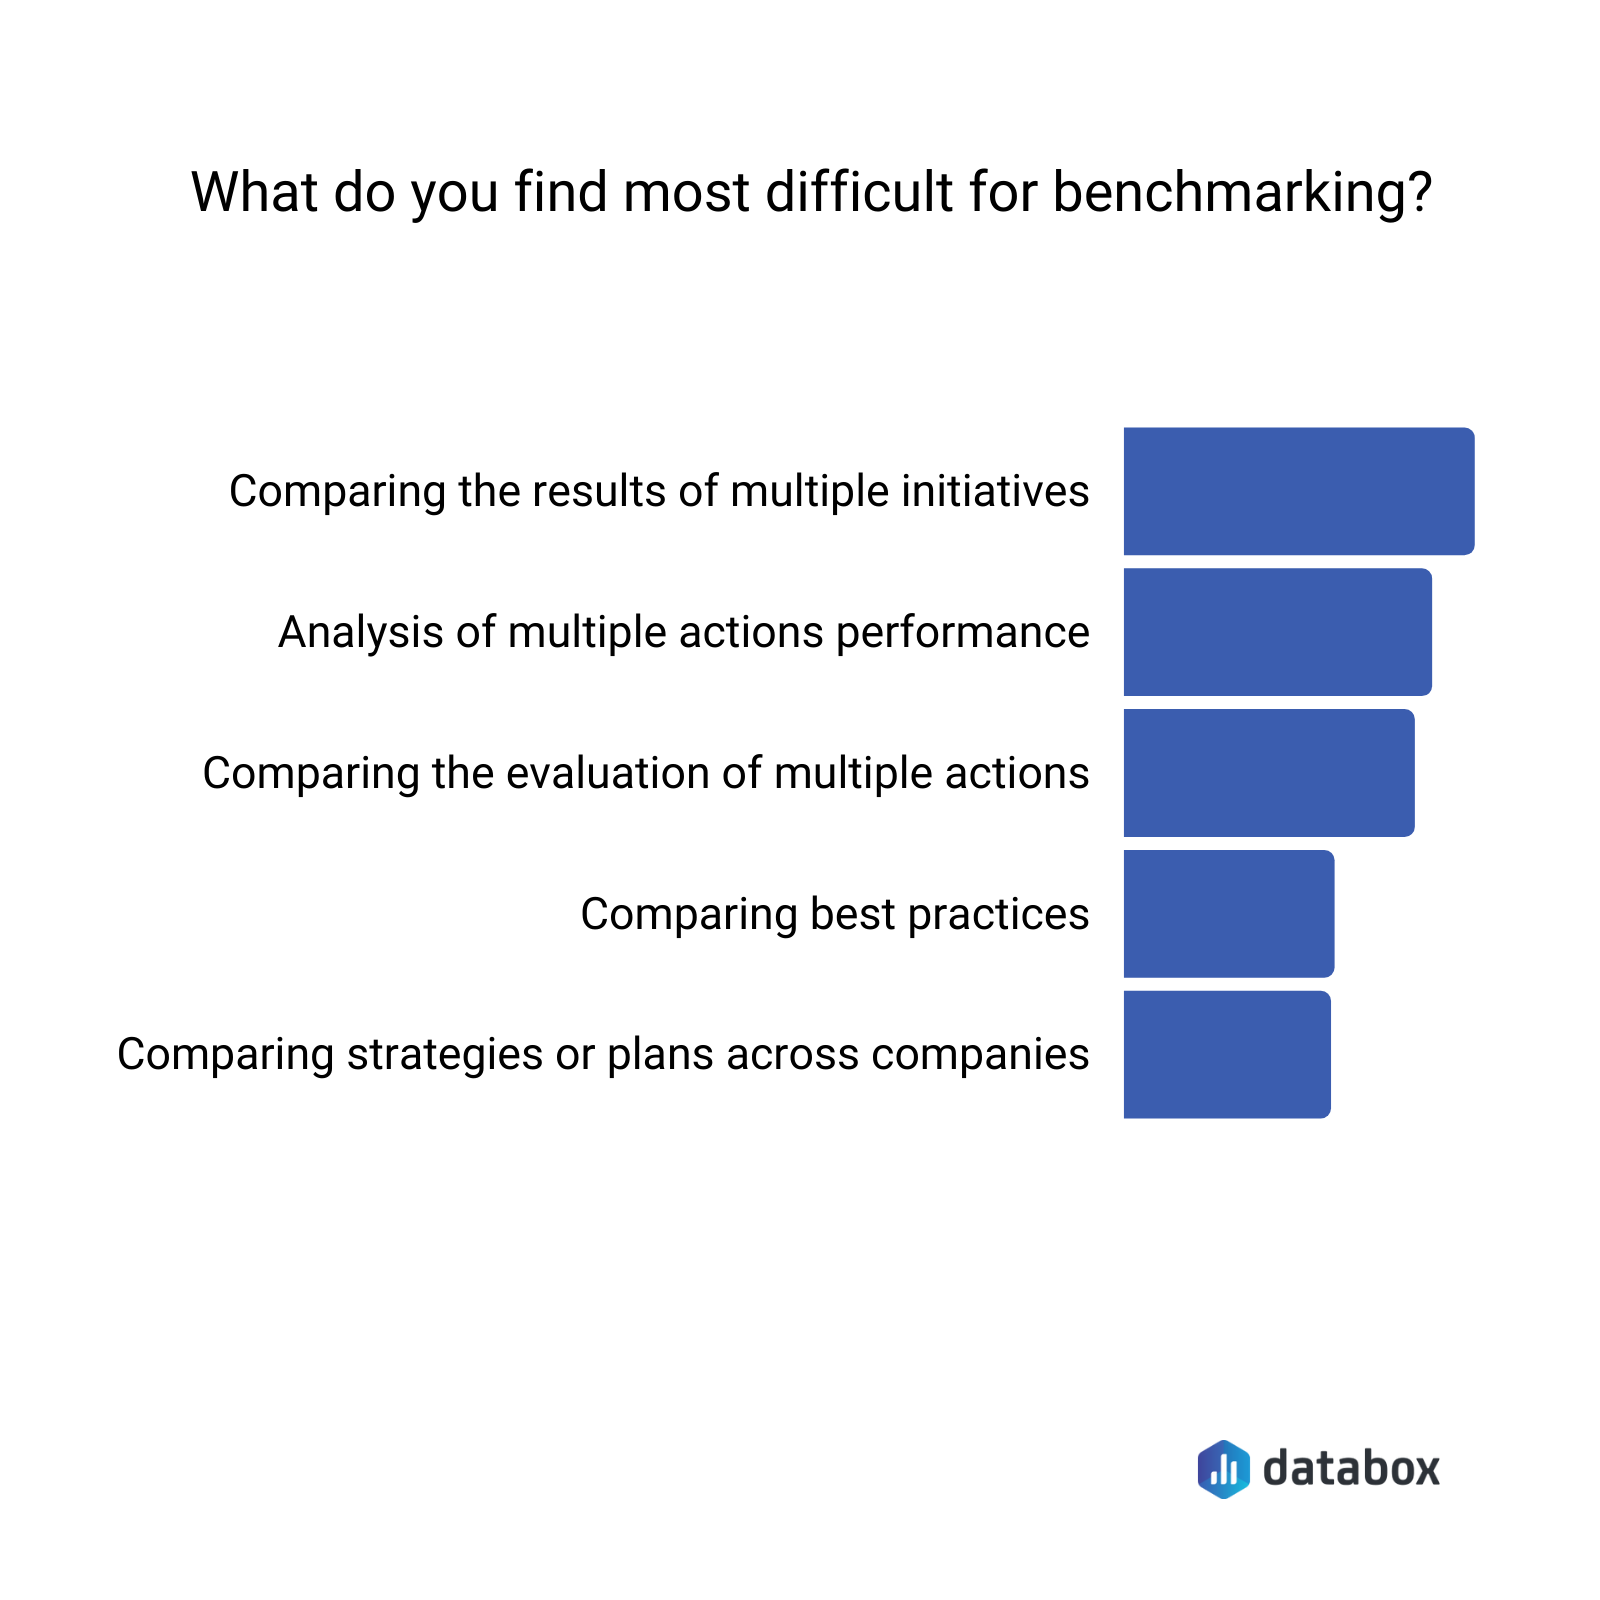 what do you find most difficult for benchmarking